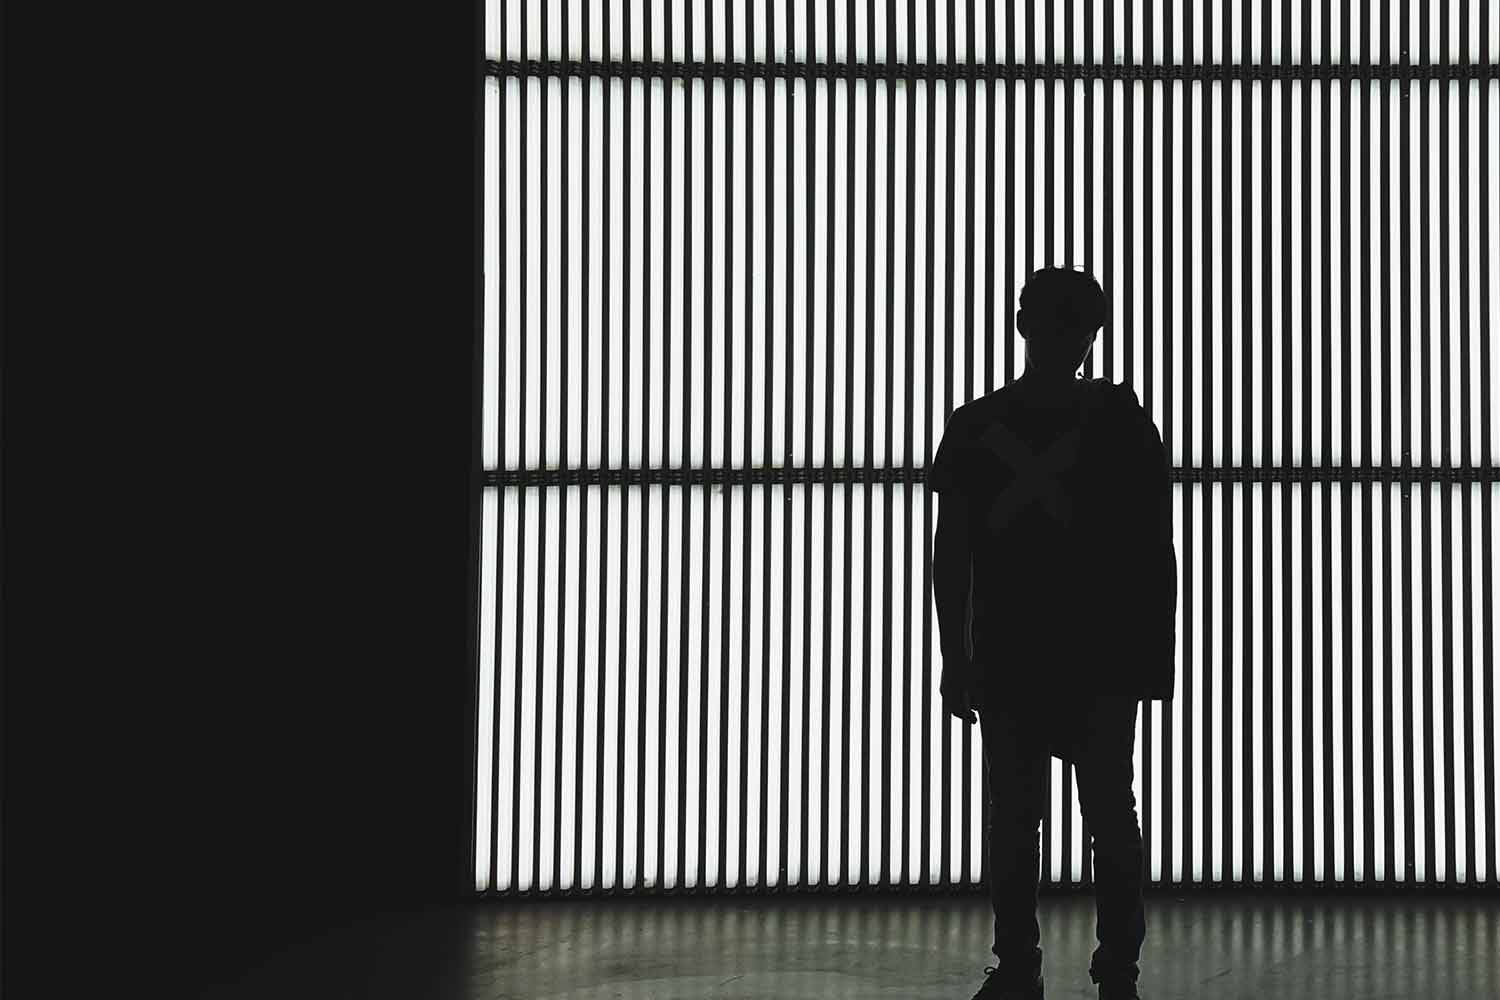 silhouette of a man against striped background